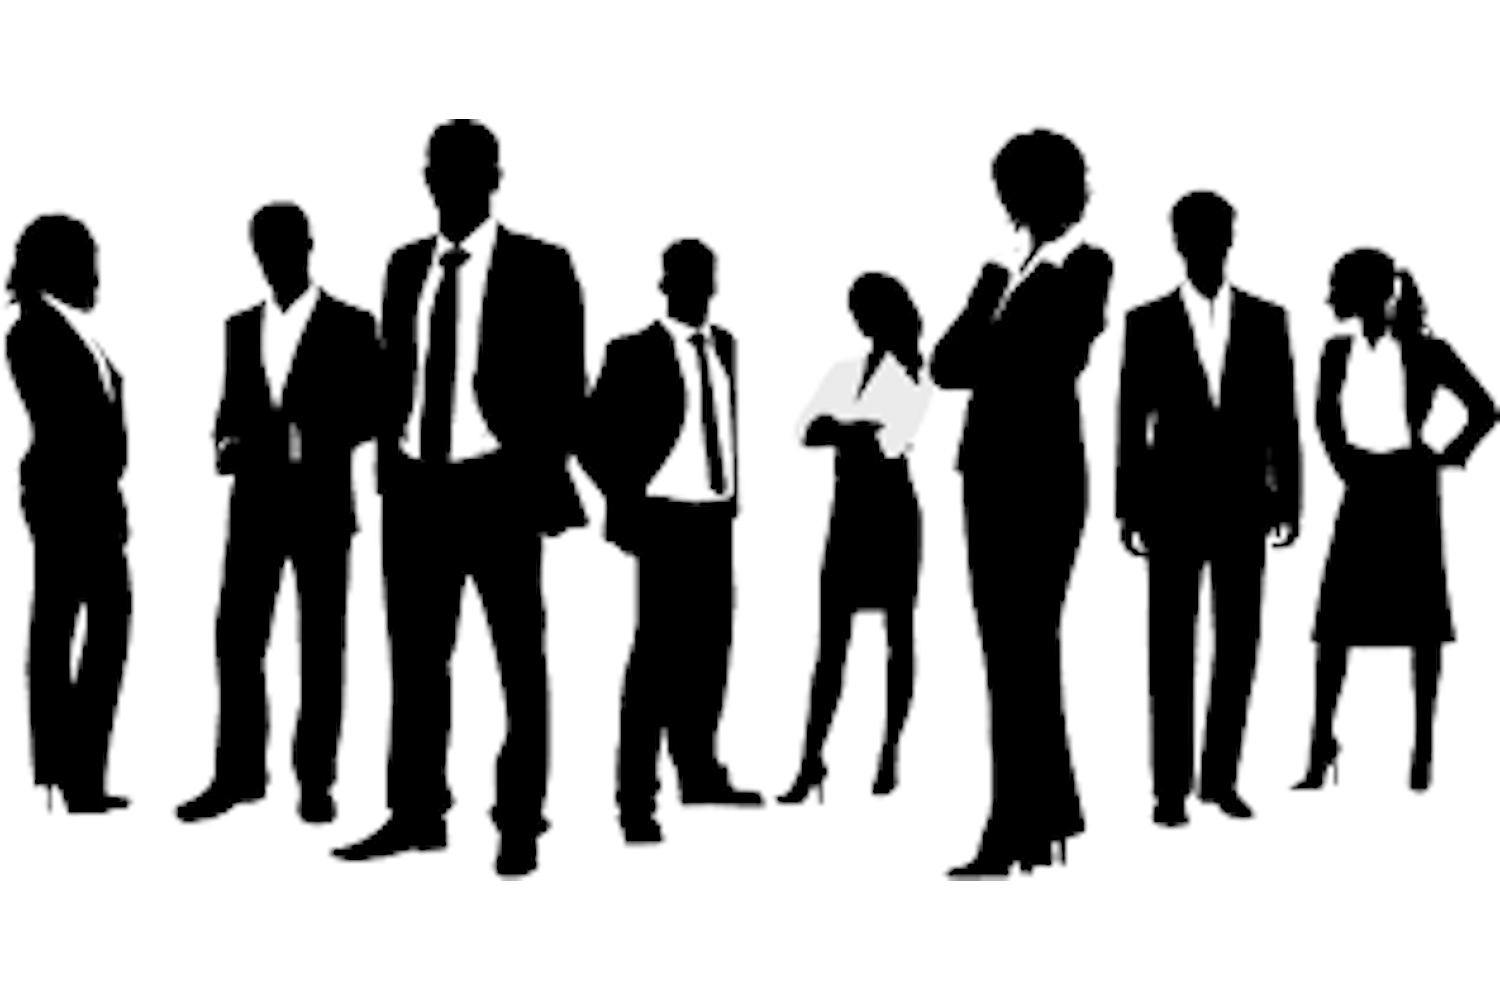 Silhouettes of students in business attire.